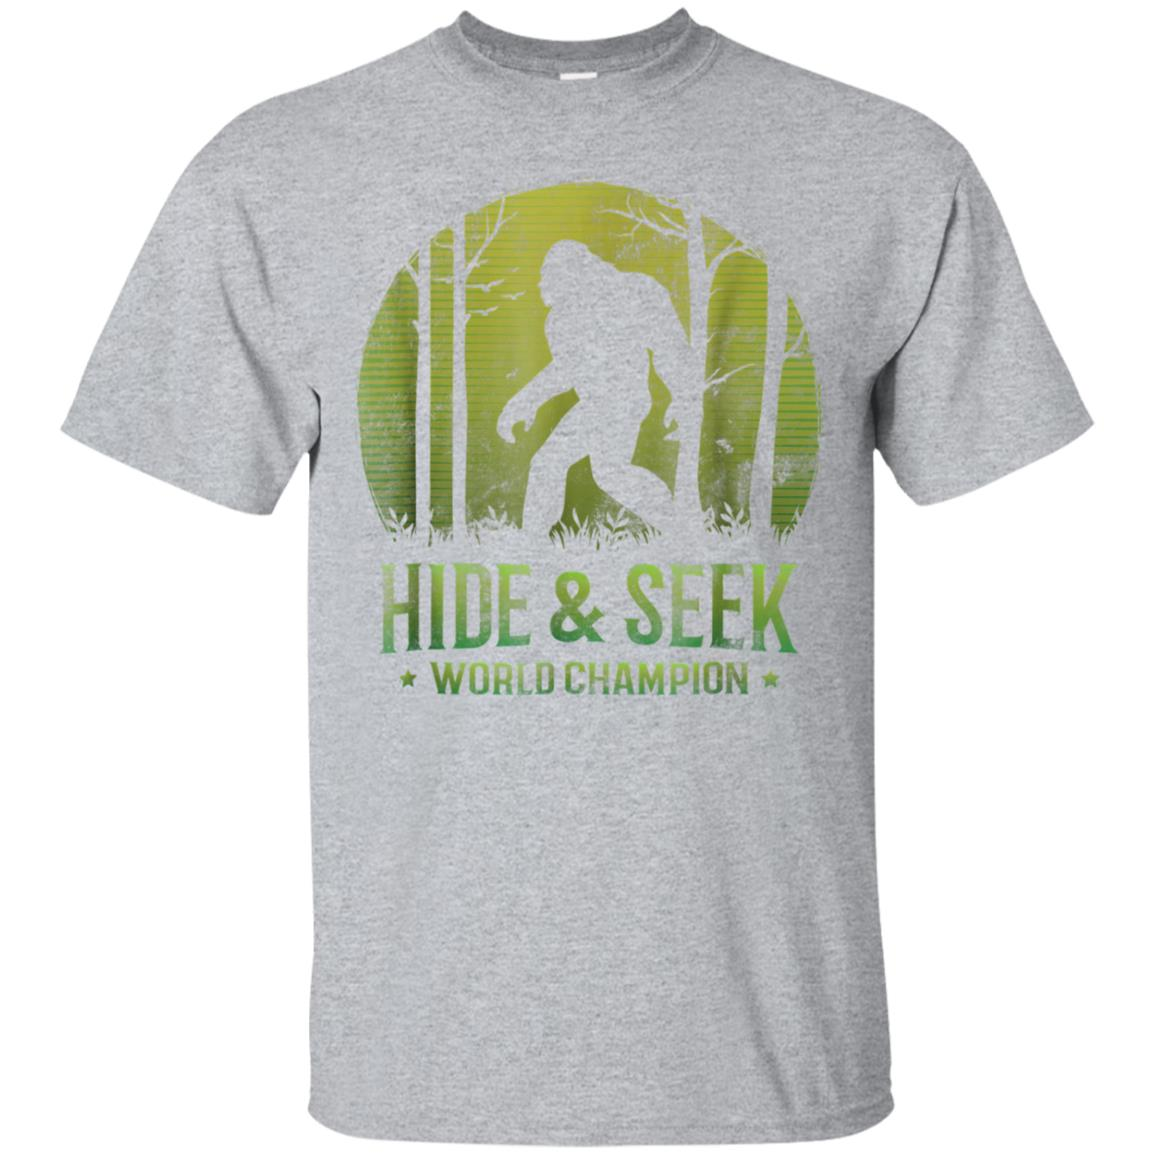 Hide and Seek World Champion T-Shirt Retro Bigfoot Believer 99promocode